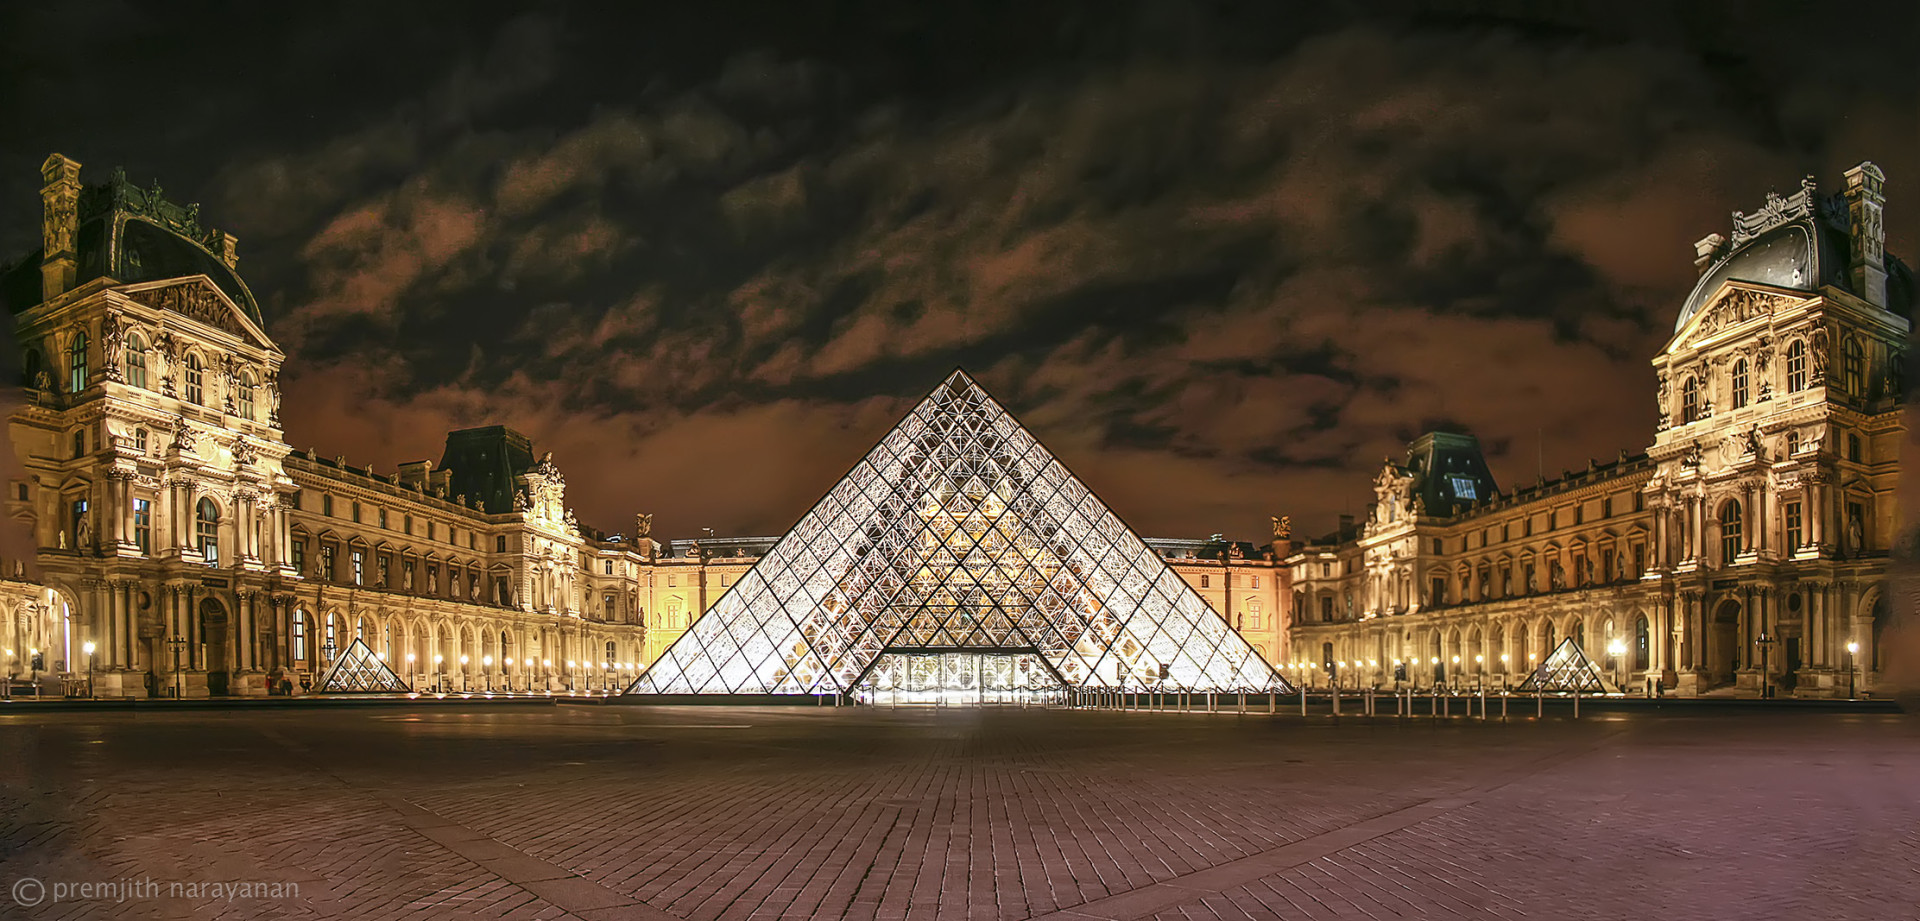 The 'Louvre' Museum